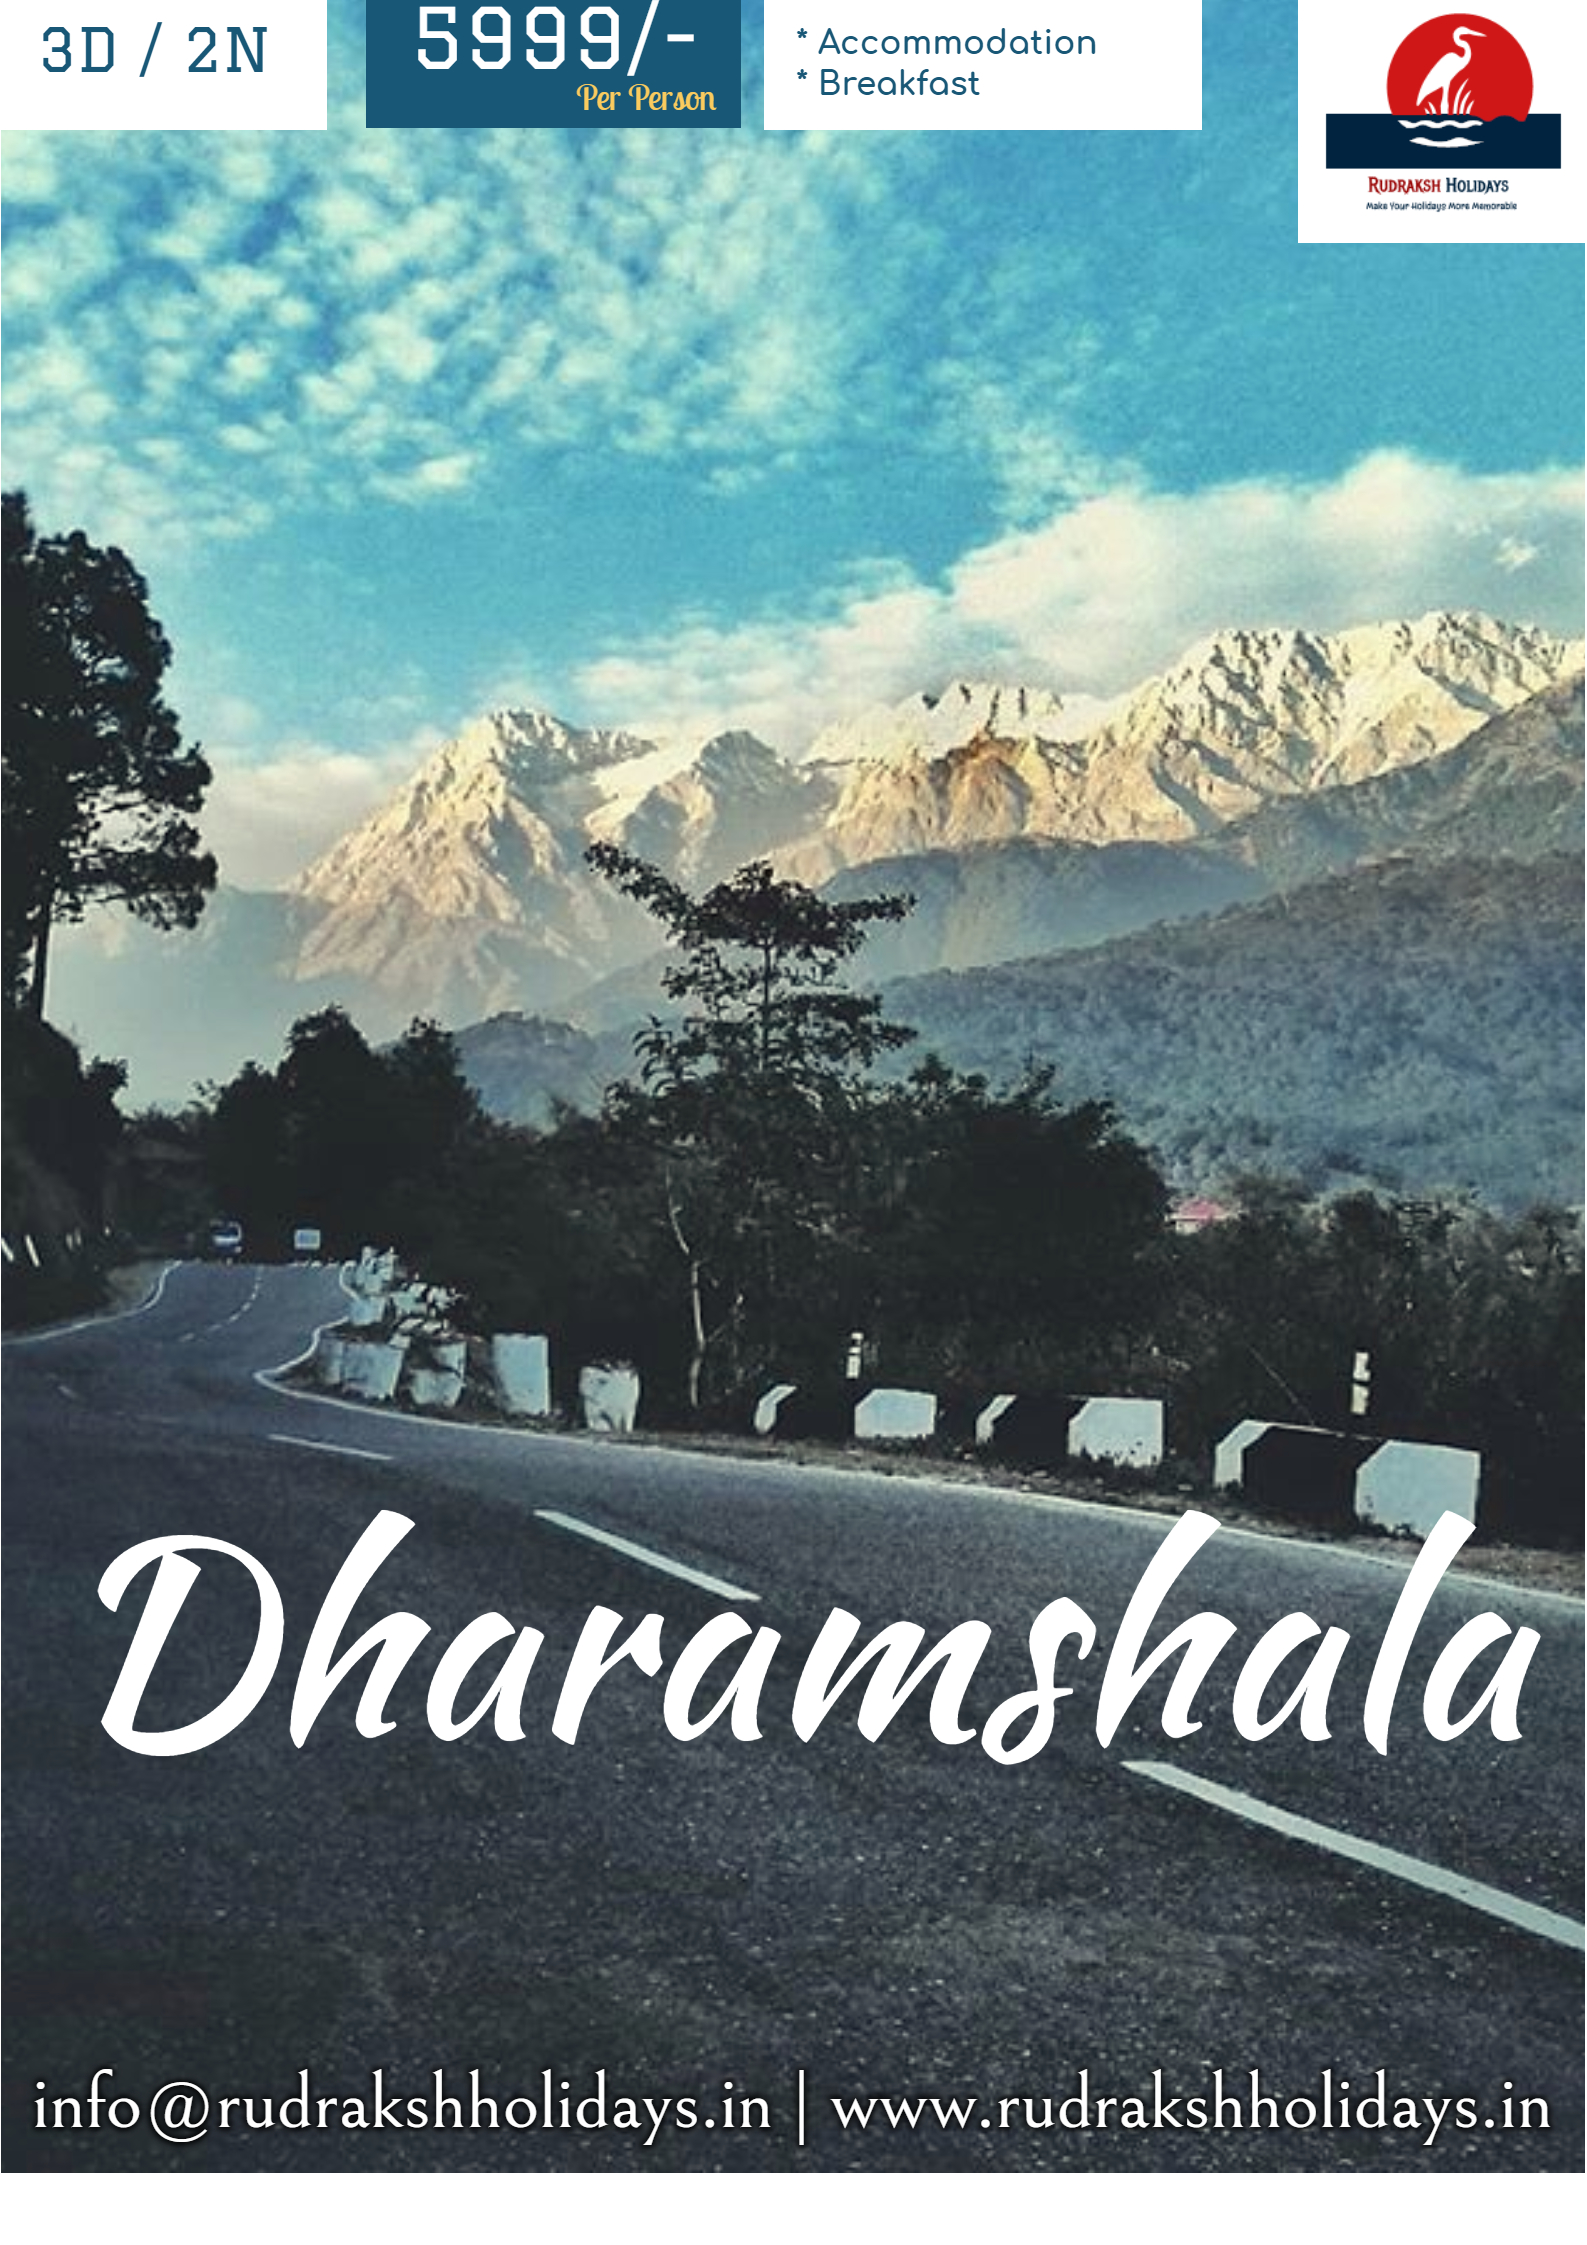 Dharamshala Tour Packages - 5999/- All